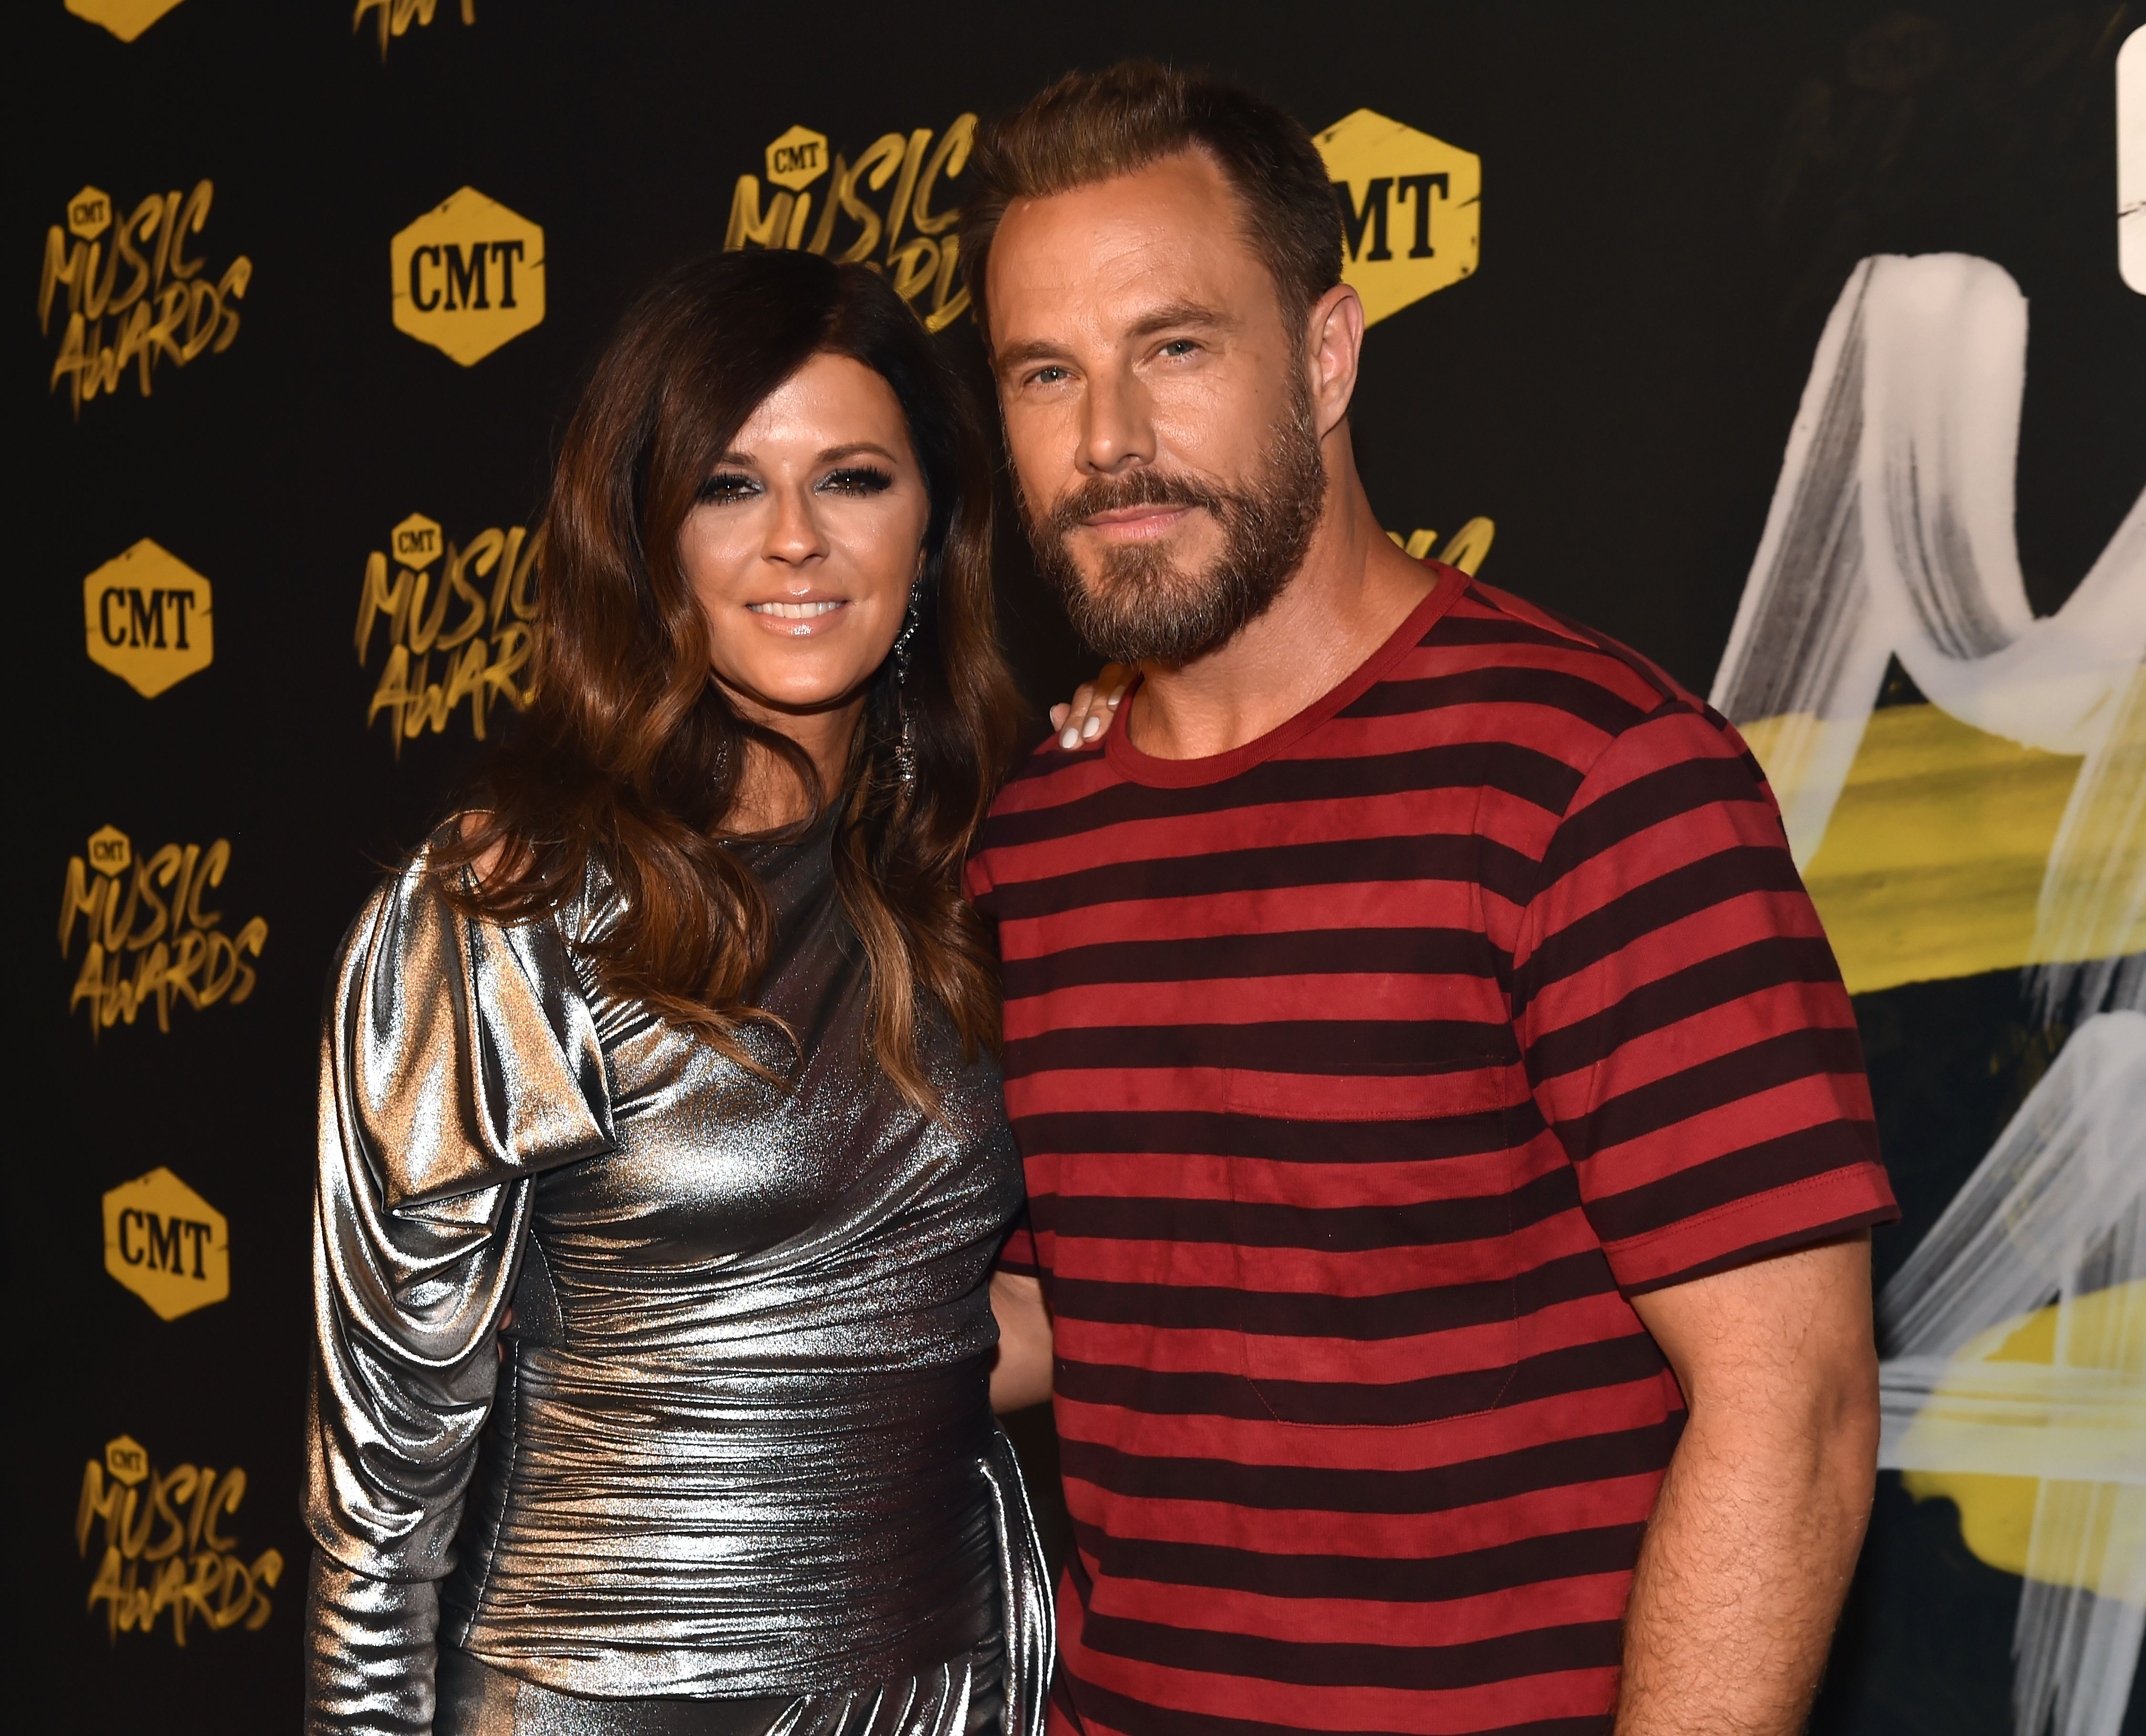 Karen Fairchild and Jimi Westbrook during the 2018 CMT Music Awards at Nashville Municipal Auditorium on June 6, 2018 in Nashville, Tennessee.   Source: Getty Images